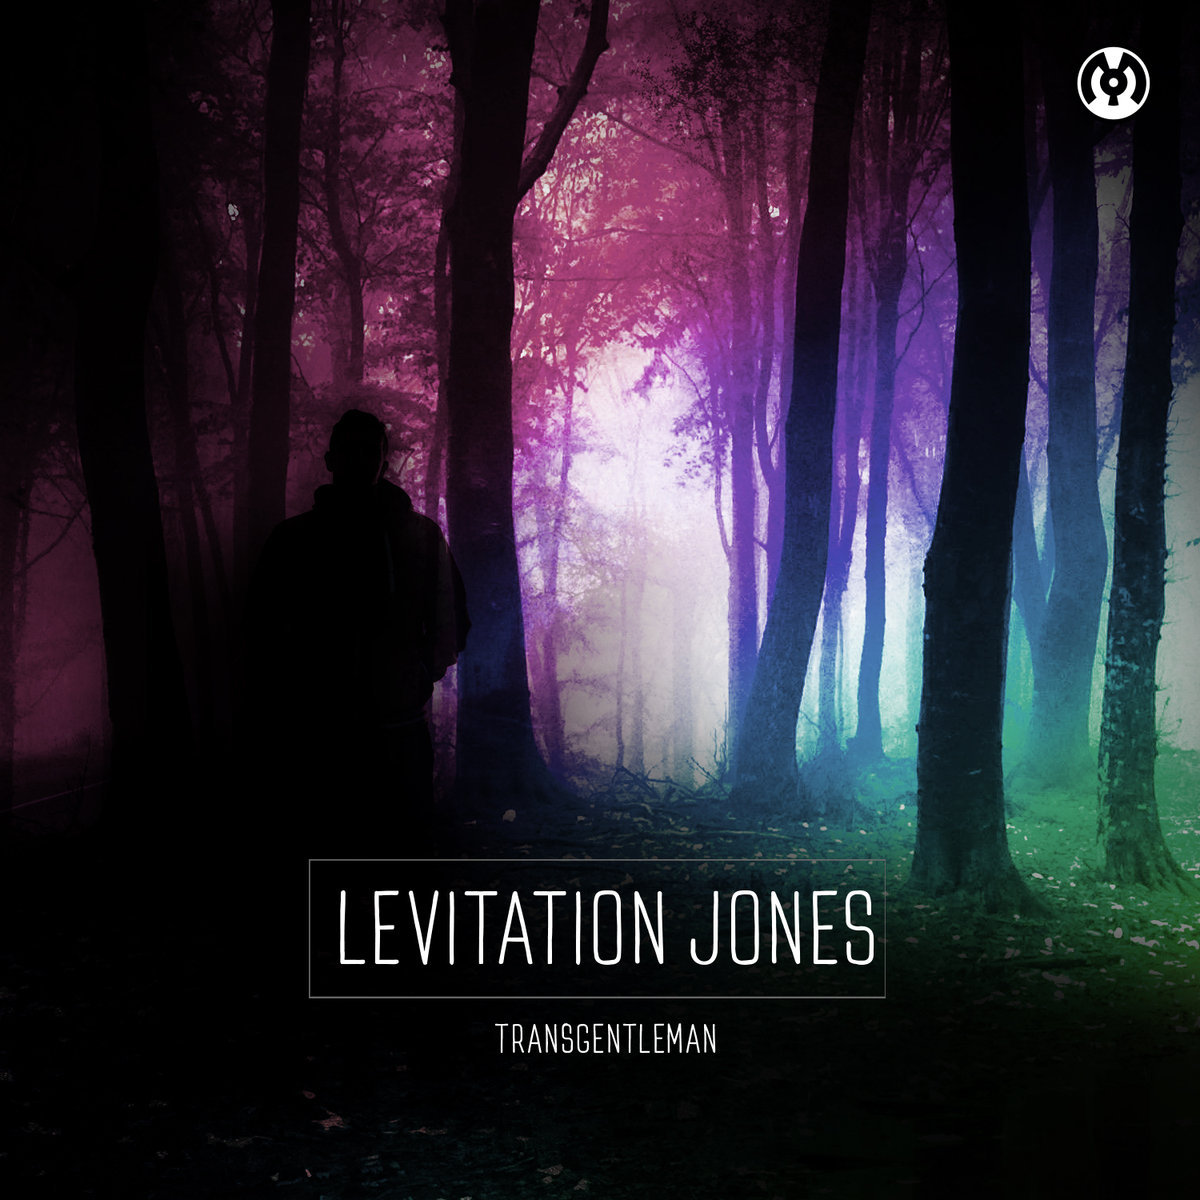 Levitation Jones - Larry @ 'Transgentleman' album (electronic, dubstep)